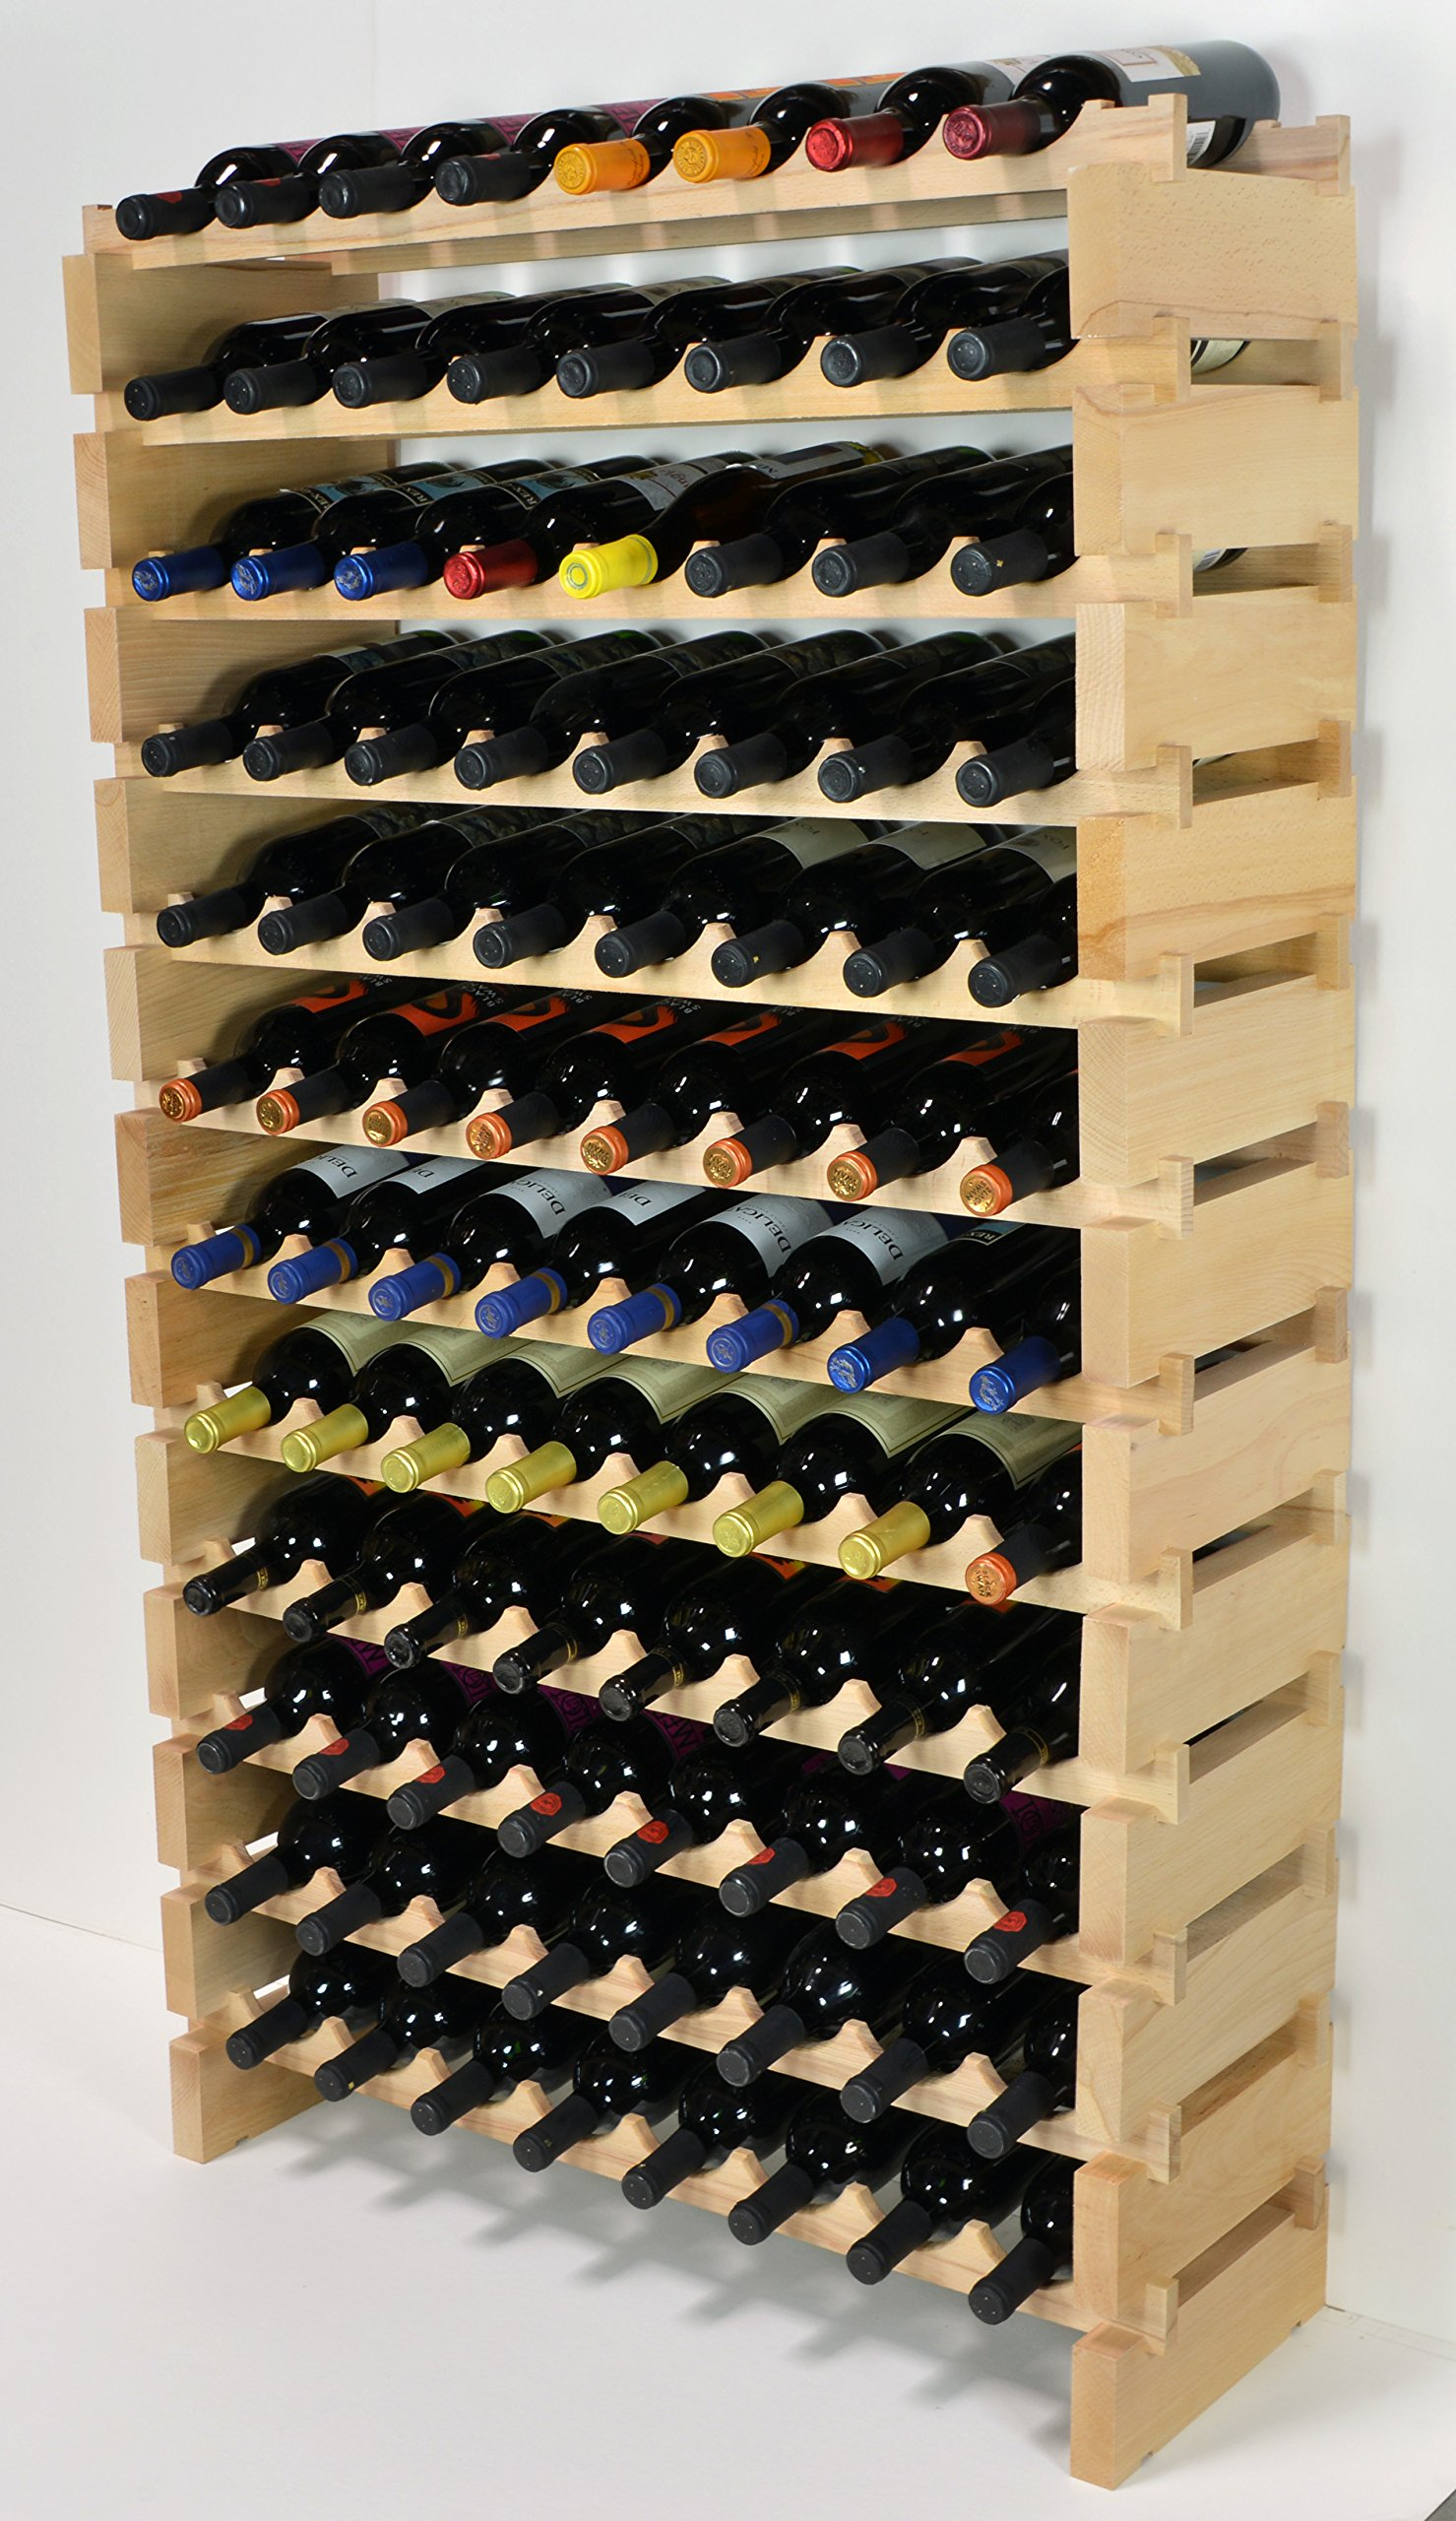 Modular Wine Rack Pine Wood 32-96 Bottle Capacity Storage 8 Bottles Across up to 12 Rows Stackable Newest Improved Model (96 Bottles - 12 Rows) by sfDisplay.com,LLC. (Image #2)